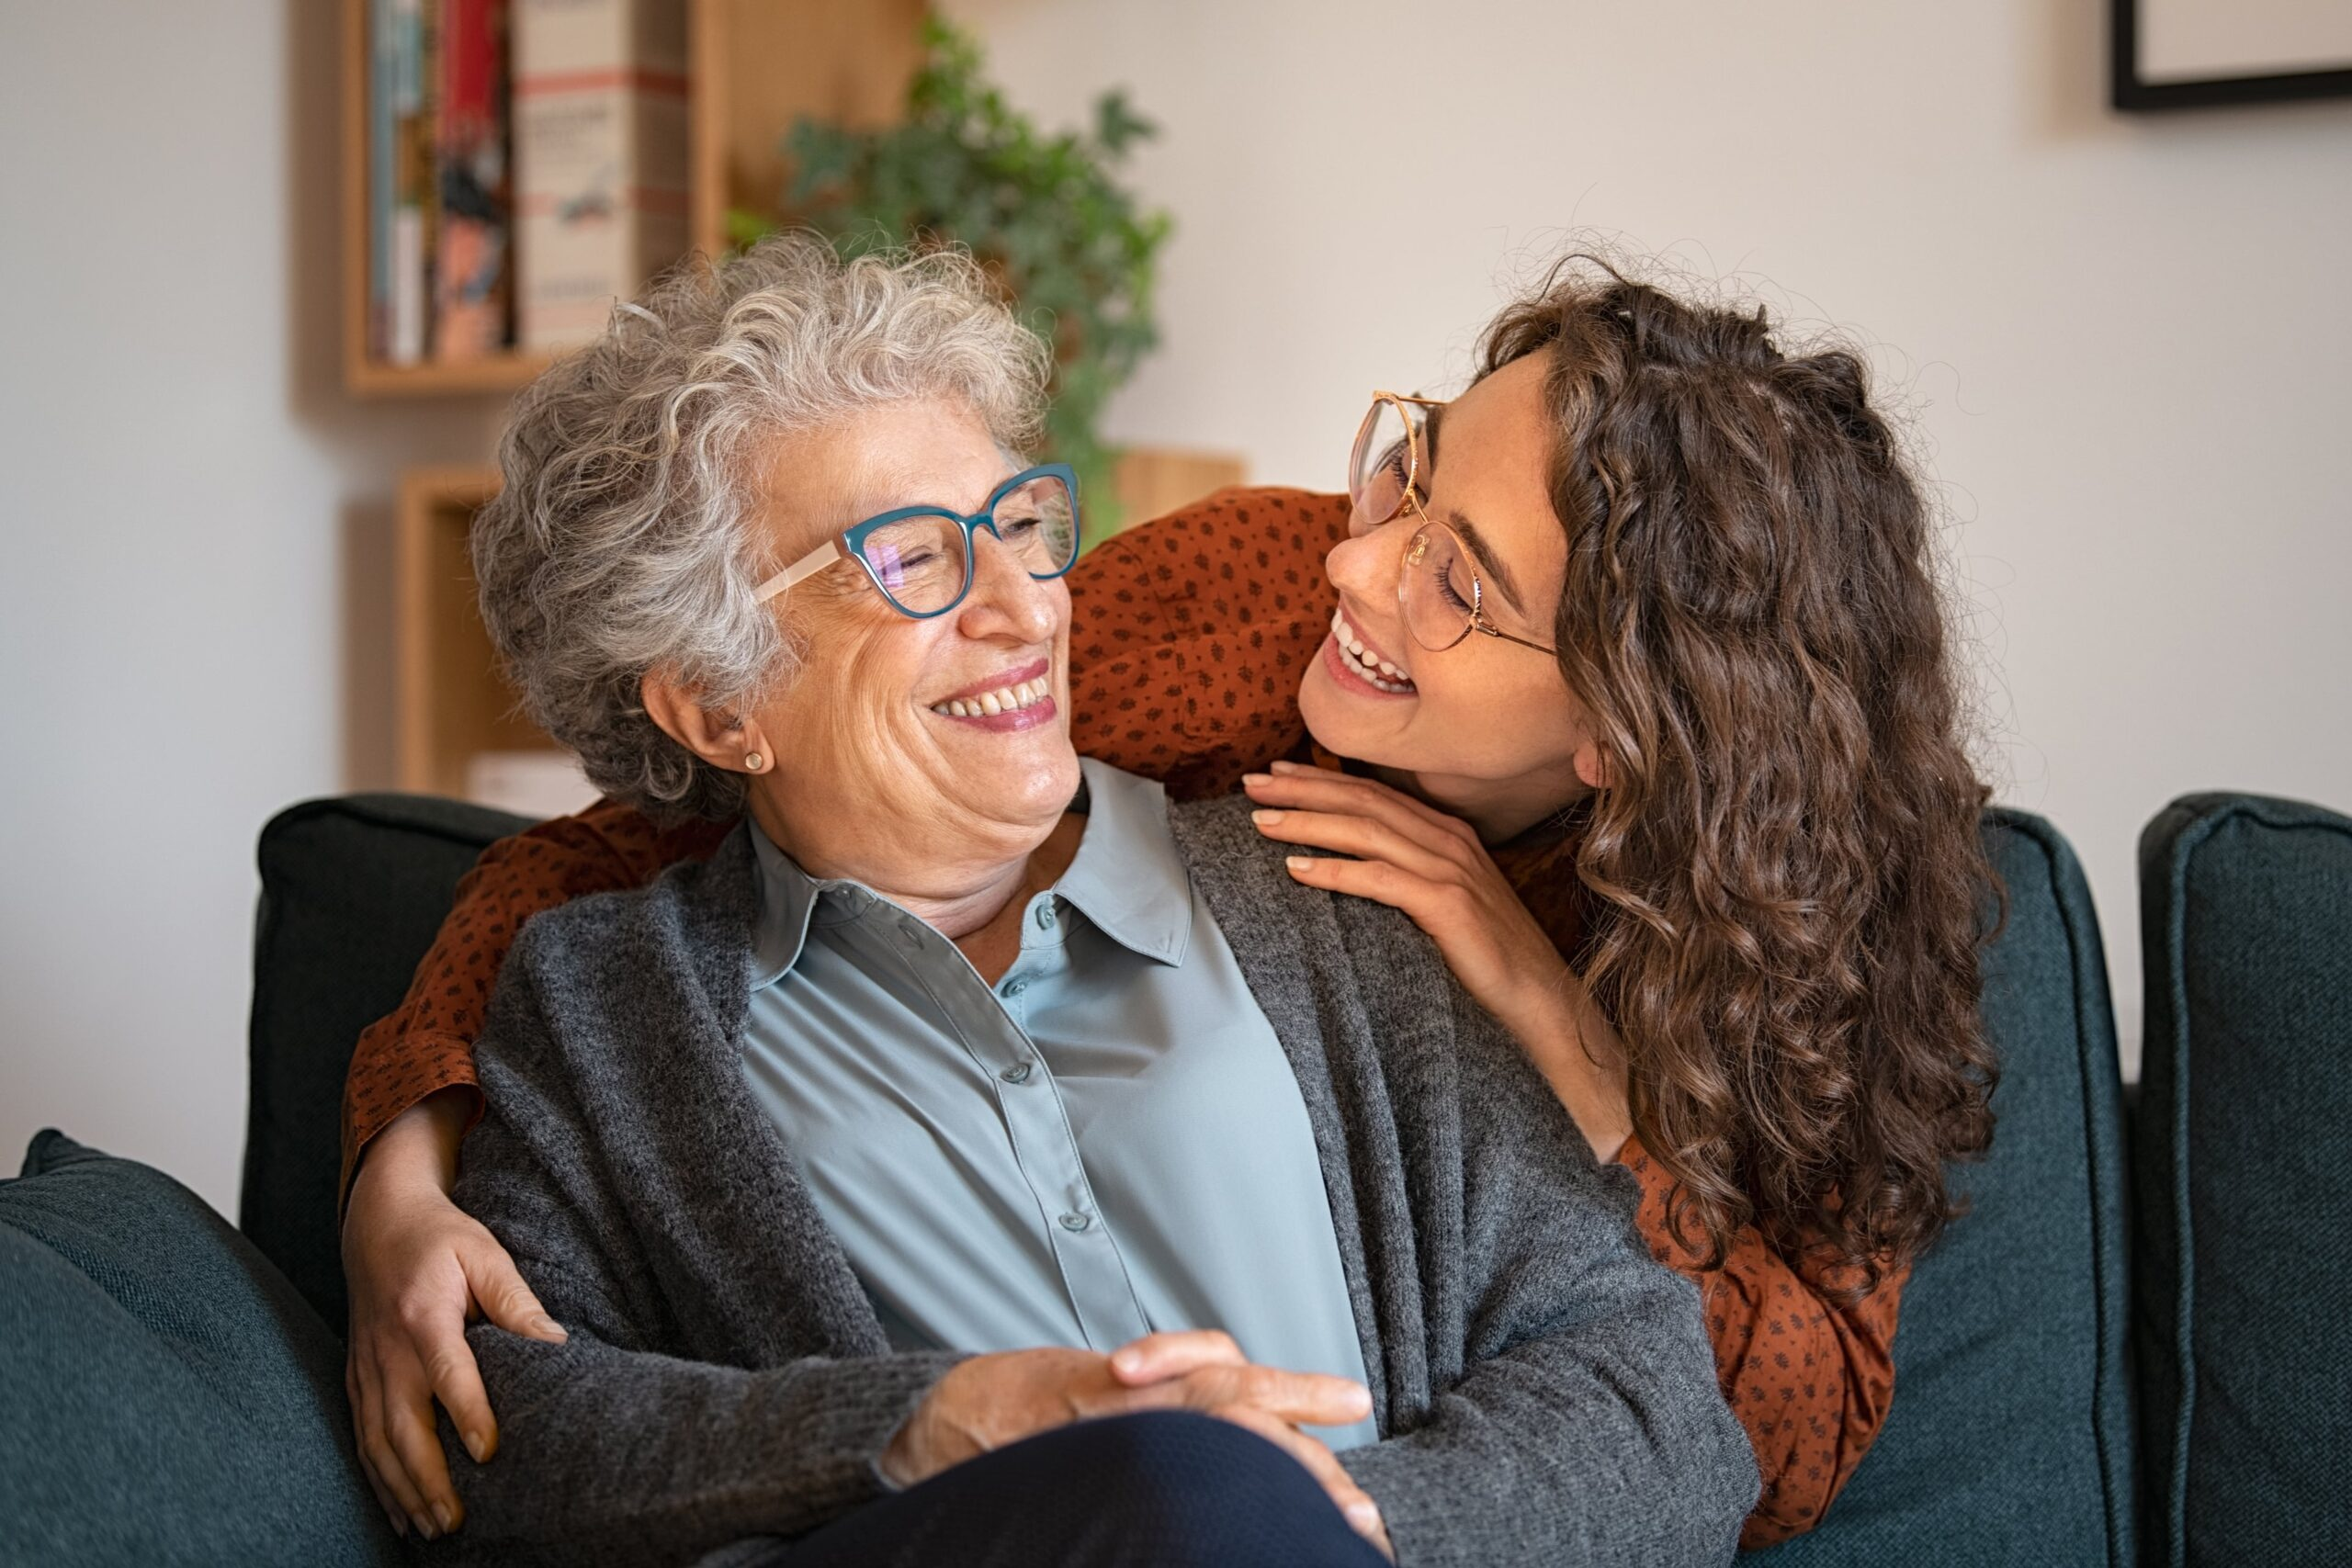 On-Site Event: Top 4 Eye Health Care Concerns For Seniors - August 26th, 2:30pm